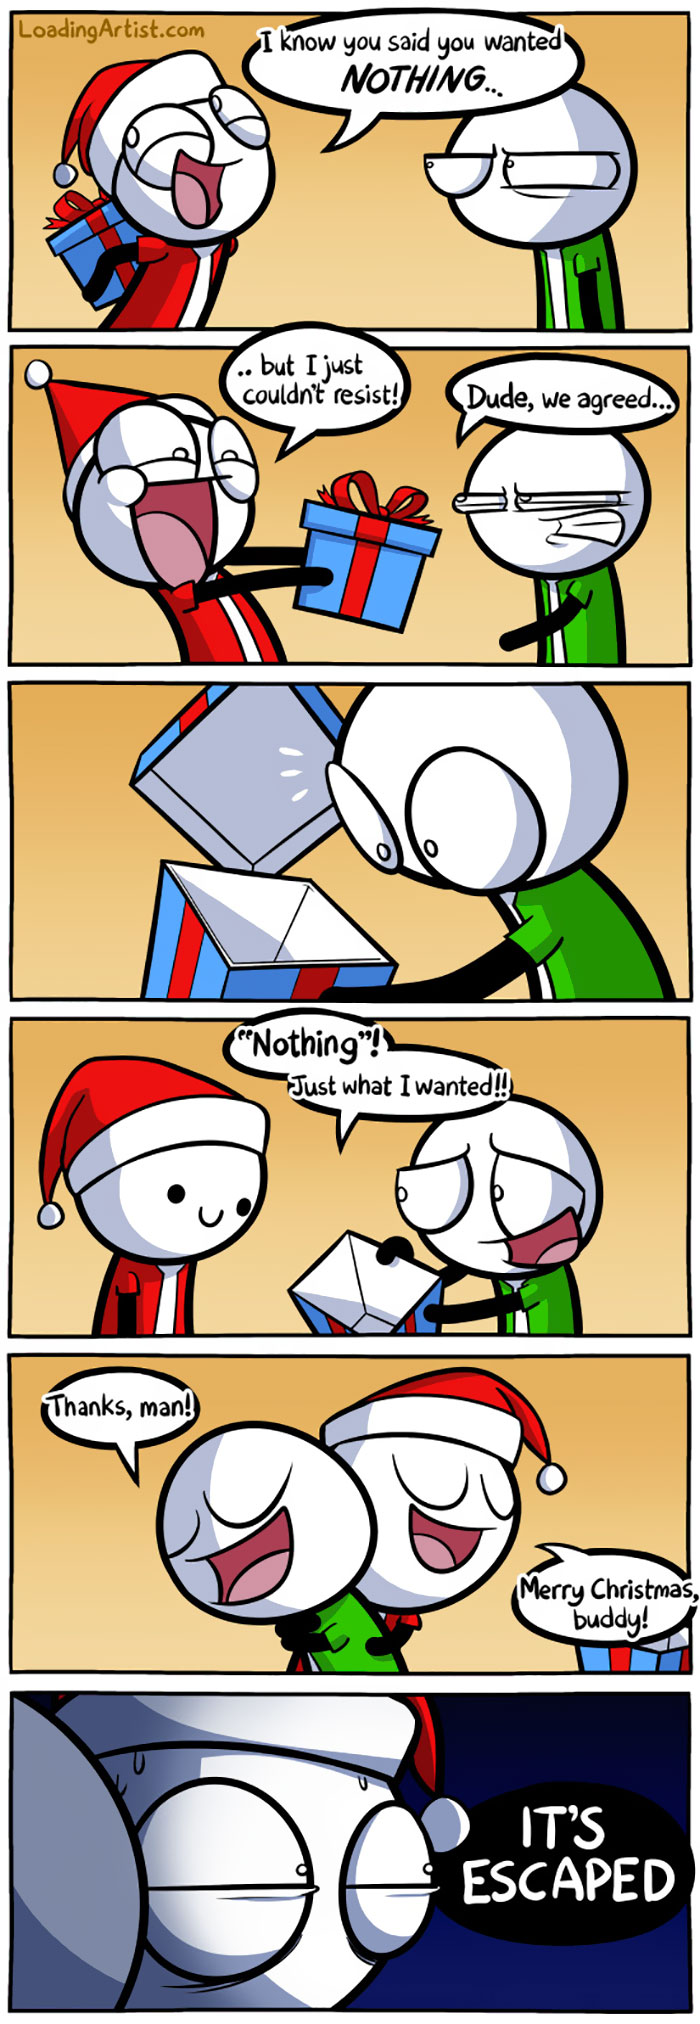 50 Of The Funniest Christmas Comics | Bored Panda